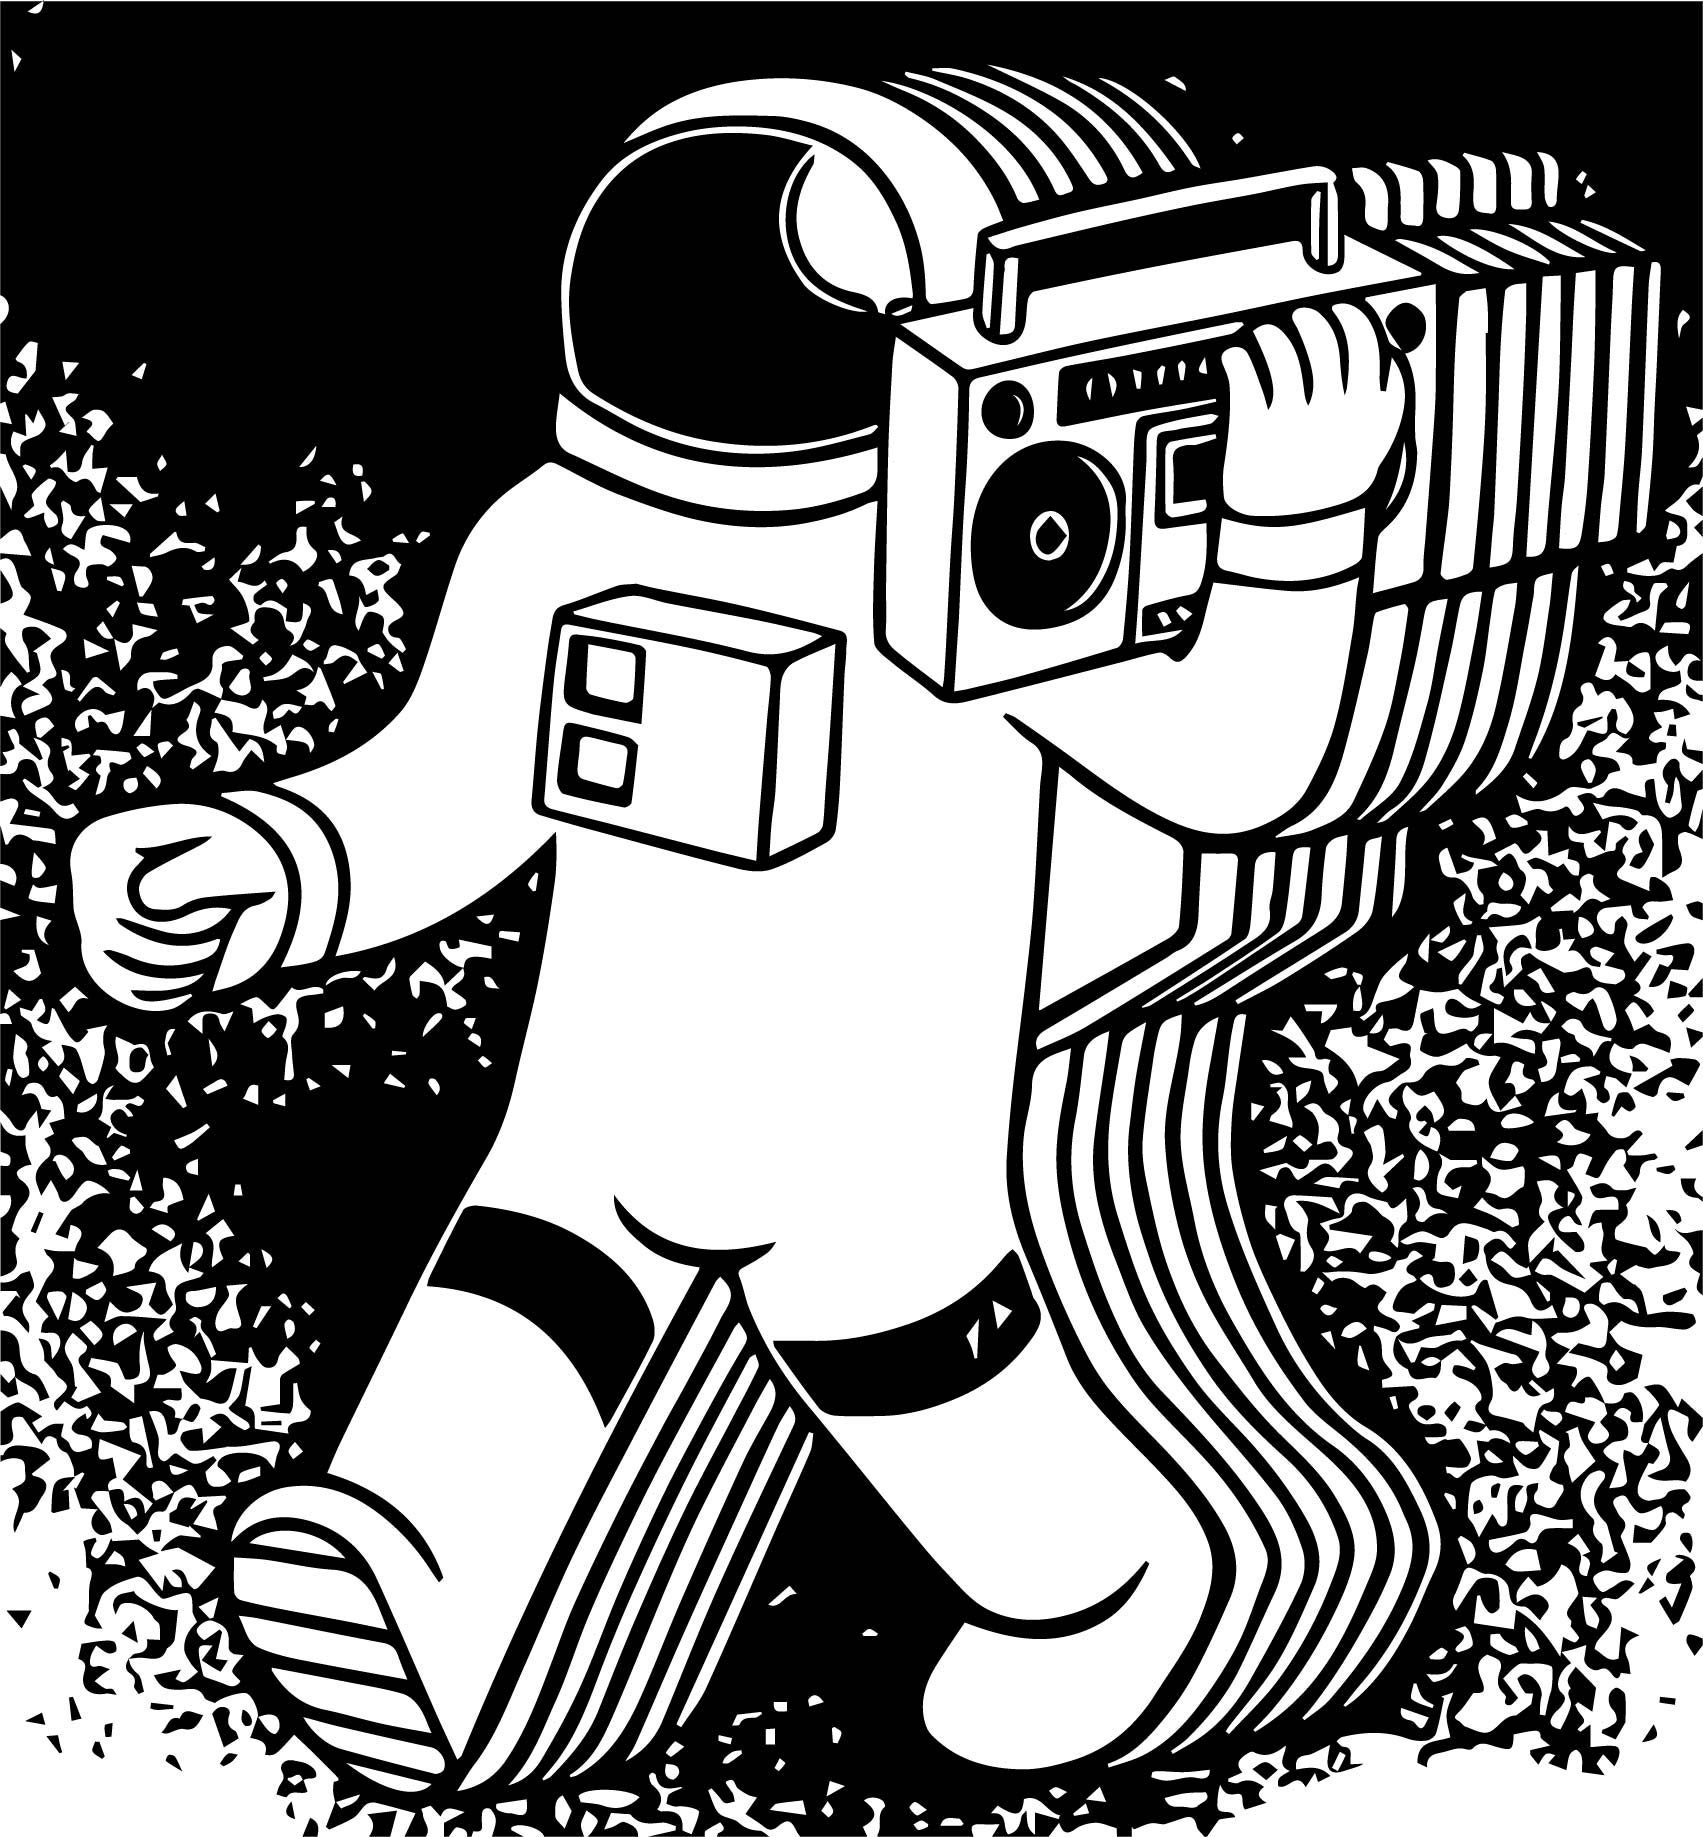 Astronaut Tape Coloring Page